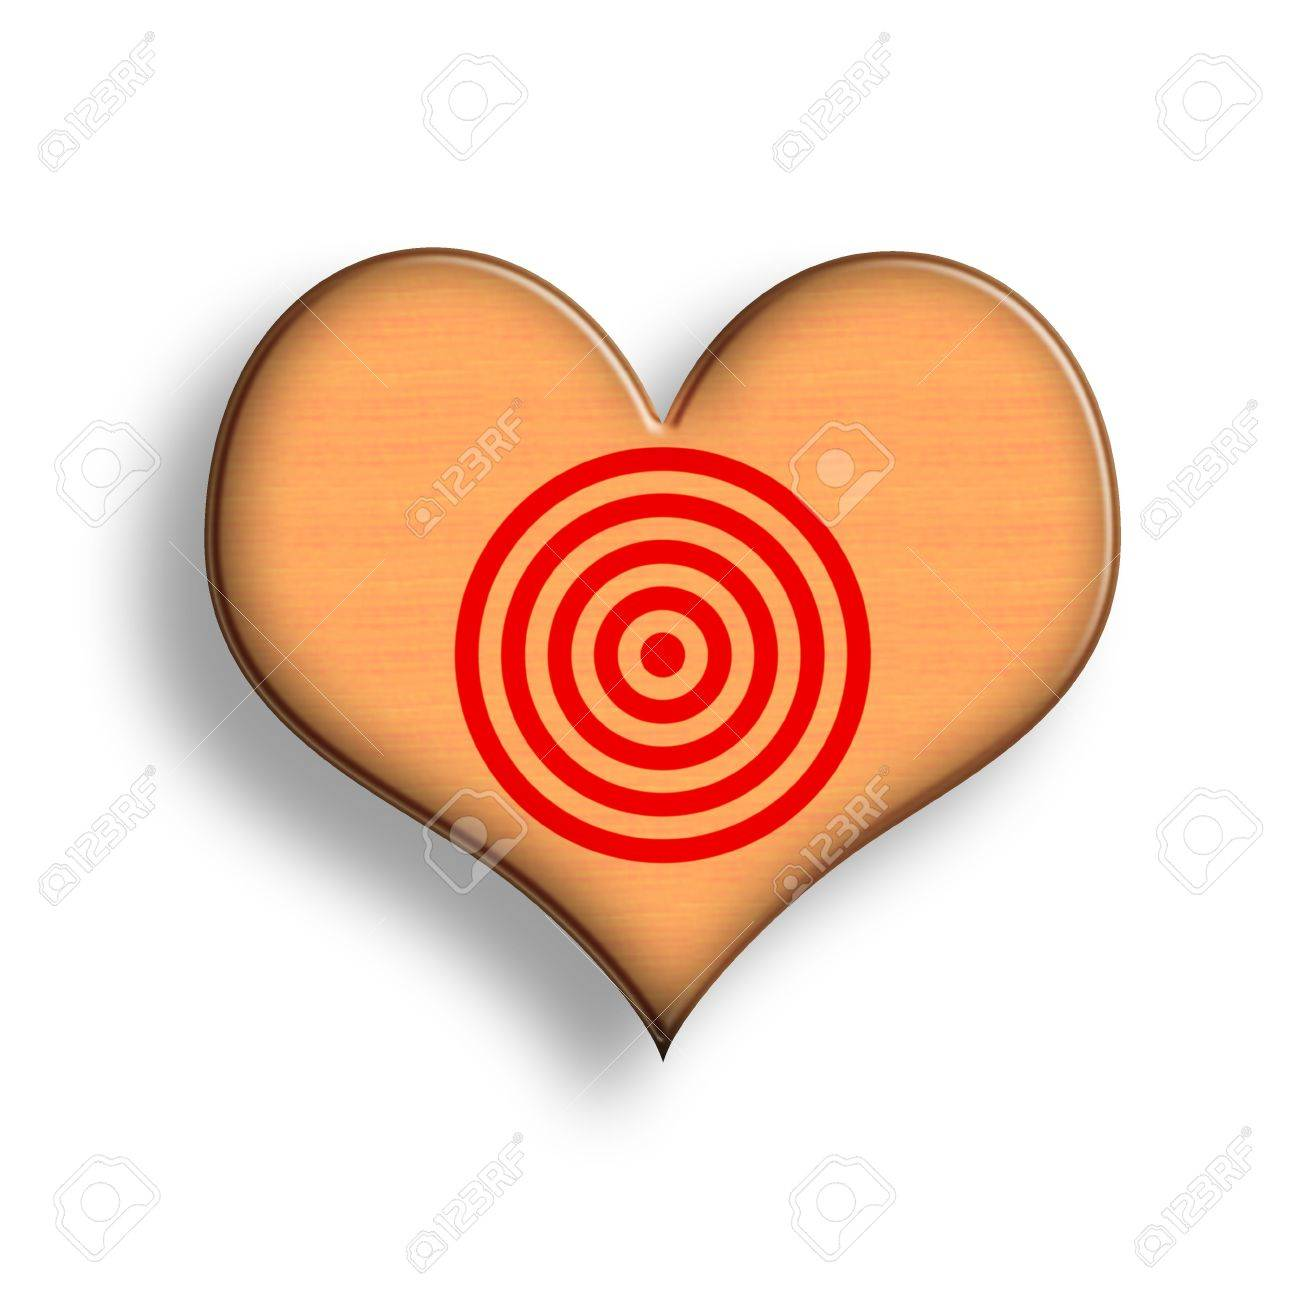 ooden Heart Symbol with Target. Illustration over White Background Stock Photo - 6339920